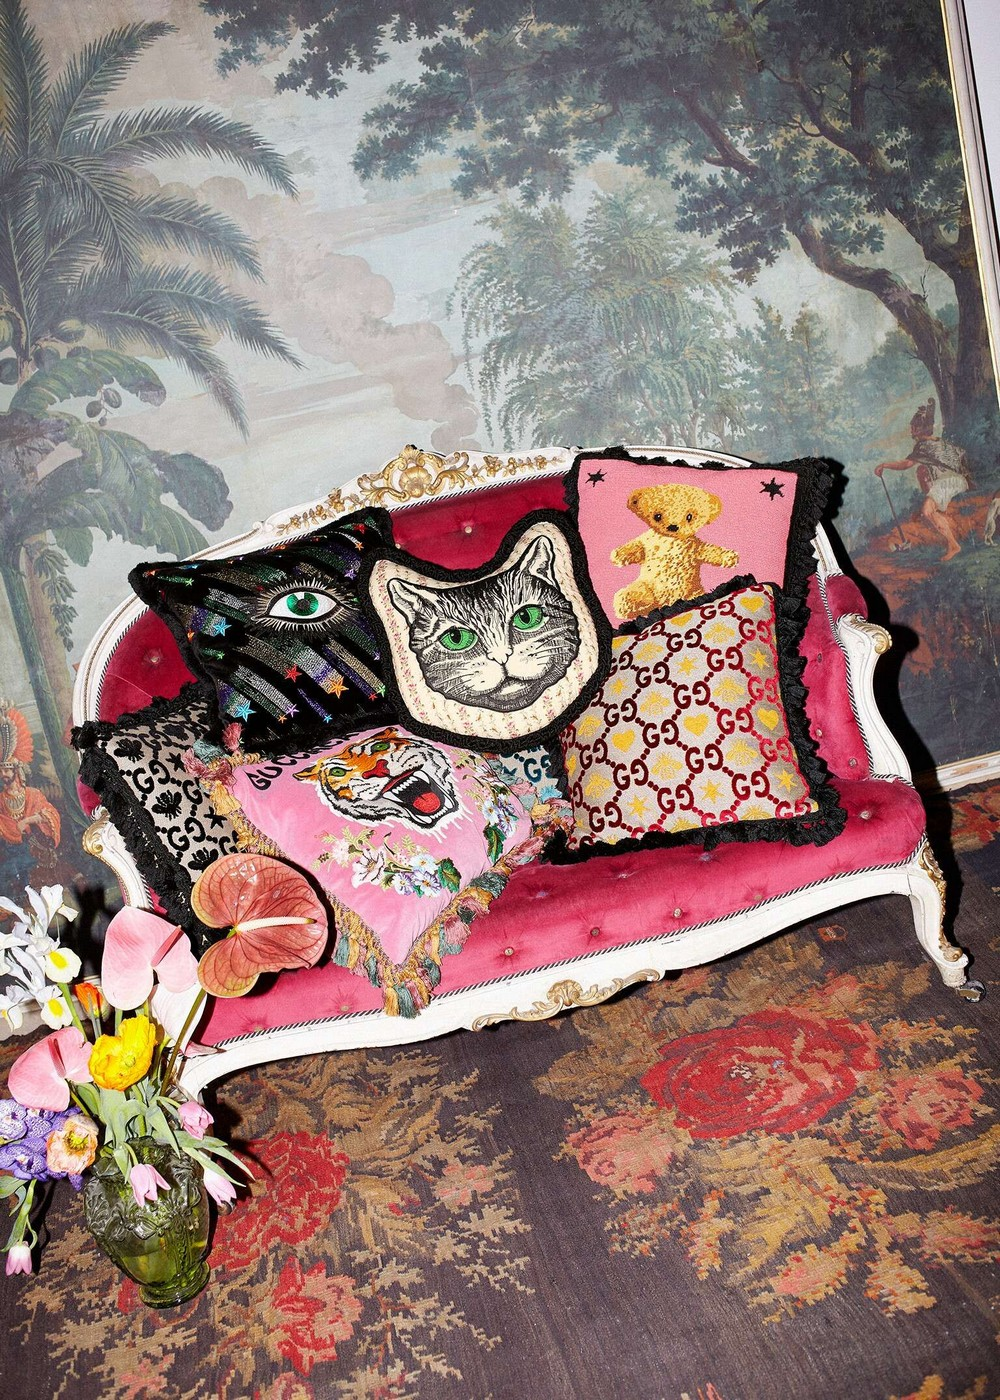 Gucci Decor An Exquisite Collection of Home Accessories & Furnishings 1 gucci decor Gucci Decor: An Exquisite Collection of Home Accessories & Furnishings Gucci Decor An Exquisite Collection of Home Accessories Furnishings 1